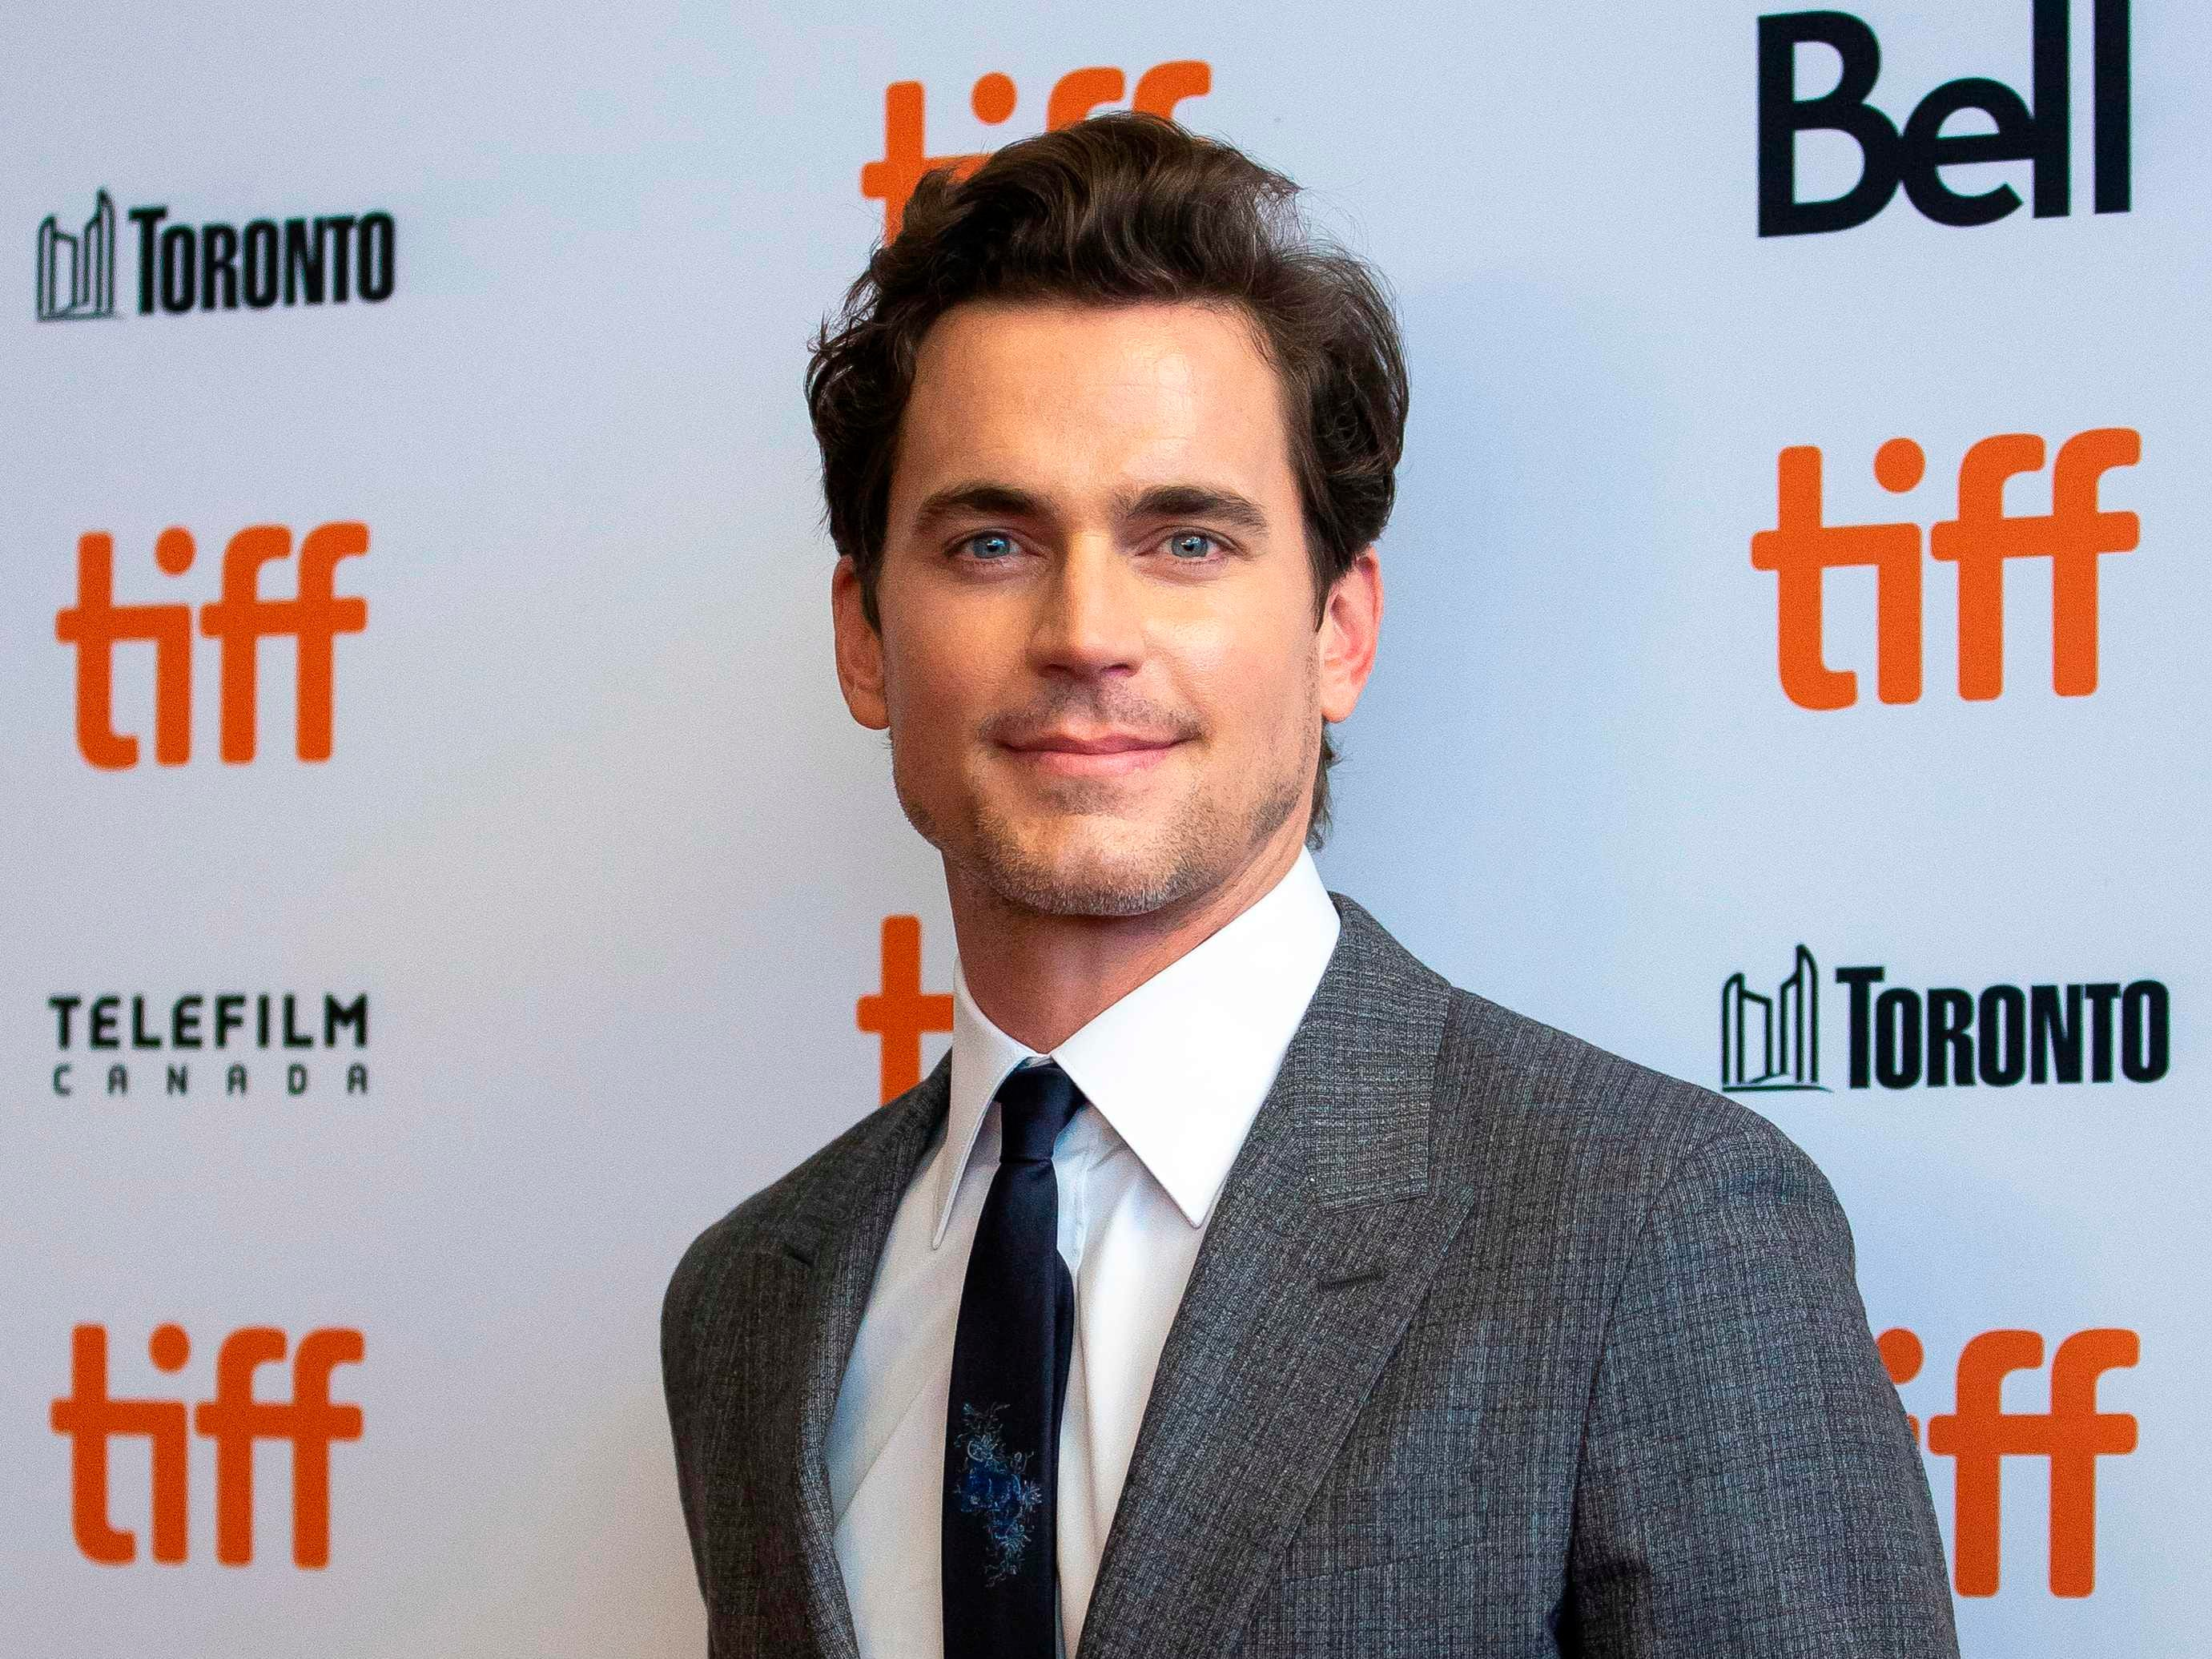 Actor Matt Bomer attends the premiere of 'Viper Man' at the Toronto International Film Festival in Toronto, Ontario, September 11, 2018. (Photo by Geoff Robins / AFP)GEOFF ROBINS/AFP/Getty Images ORG XMIT: Toronto I ORIG FILE ID: AFP_1911M3